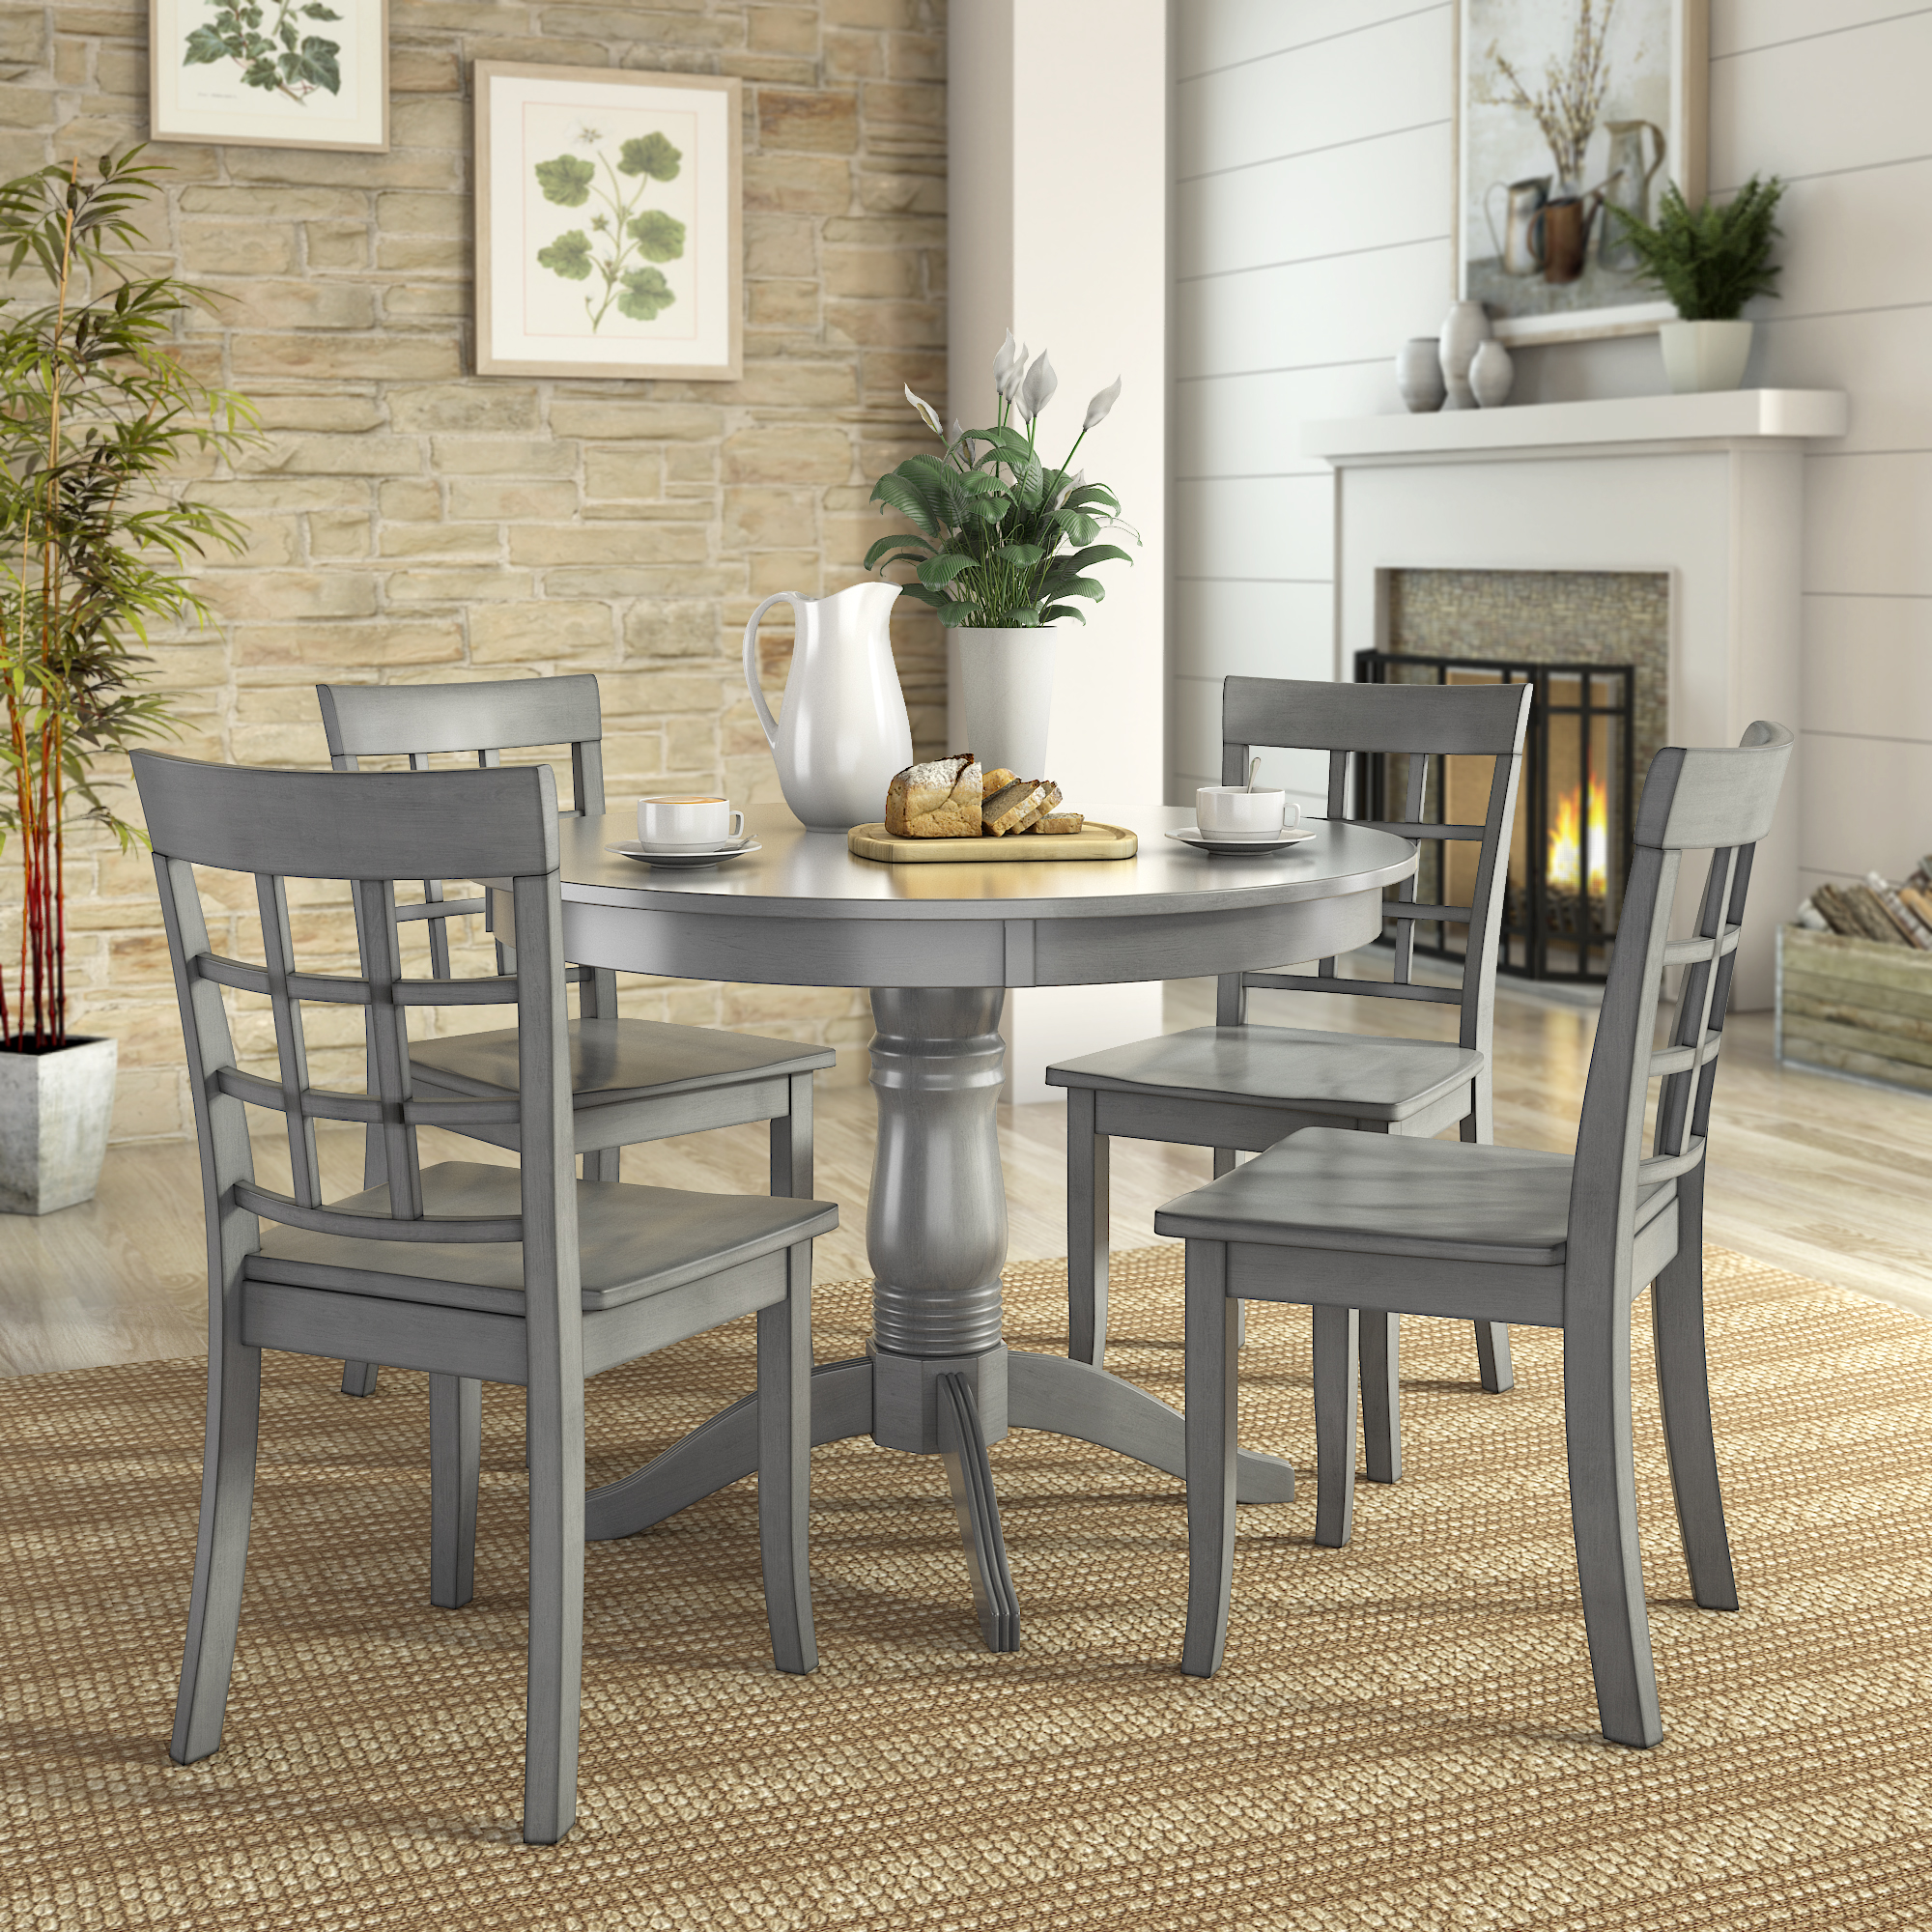 Weston Home Lexington 5-Piece Dining Set, 4 Window Back Chairs